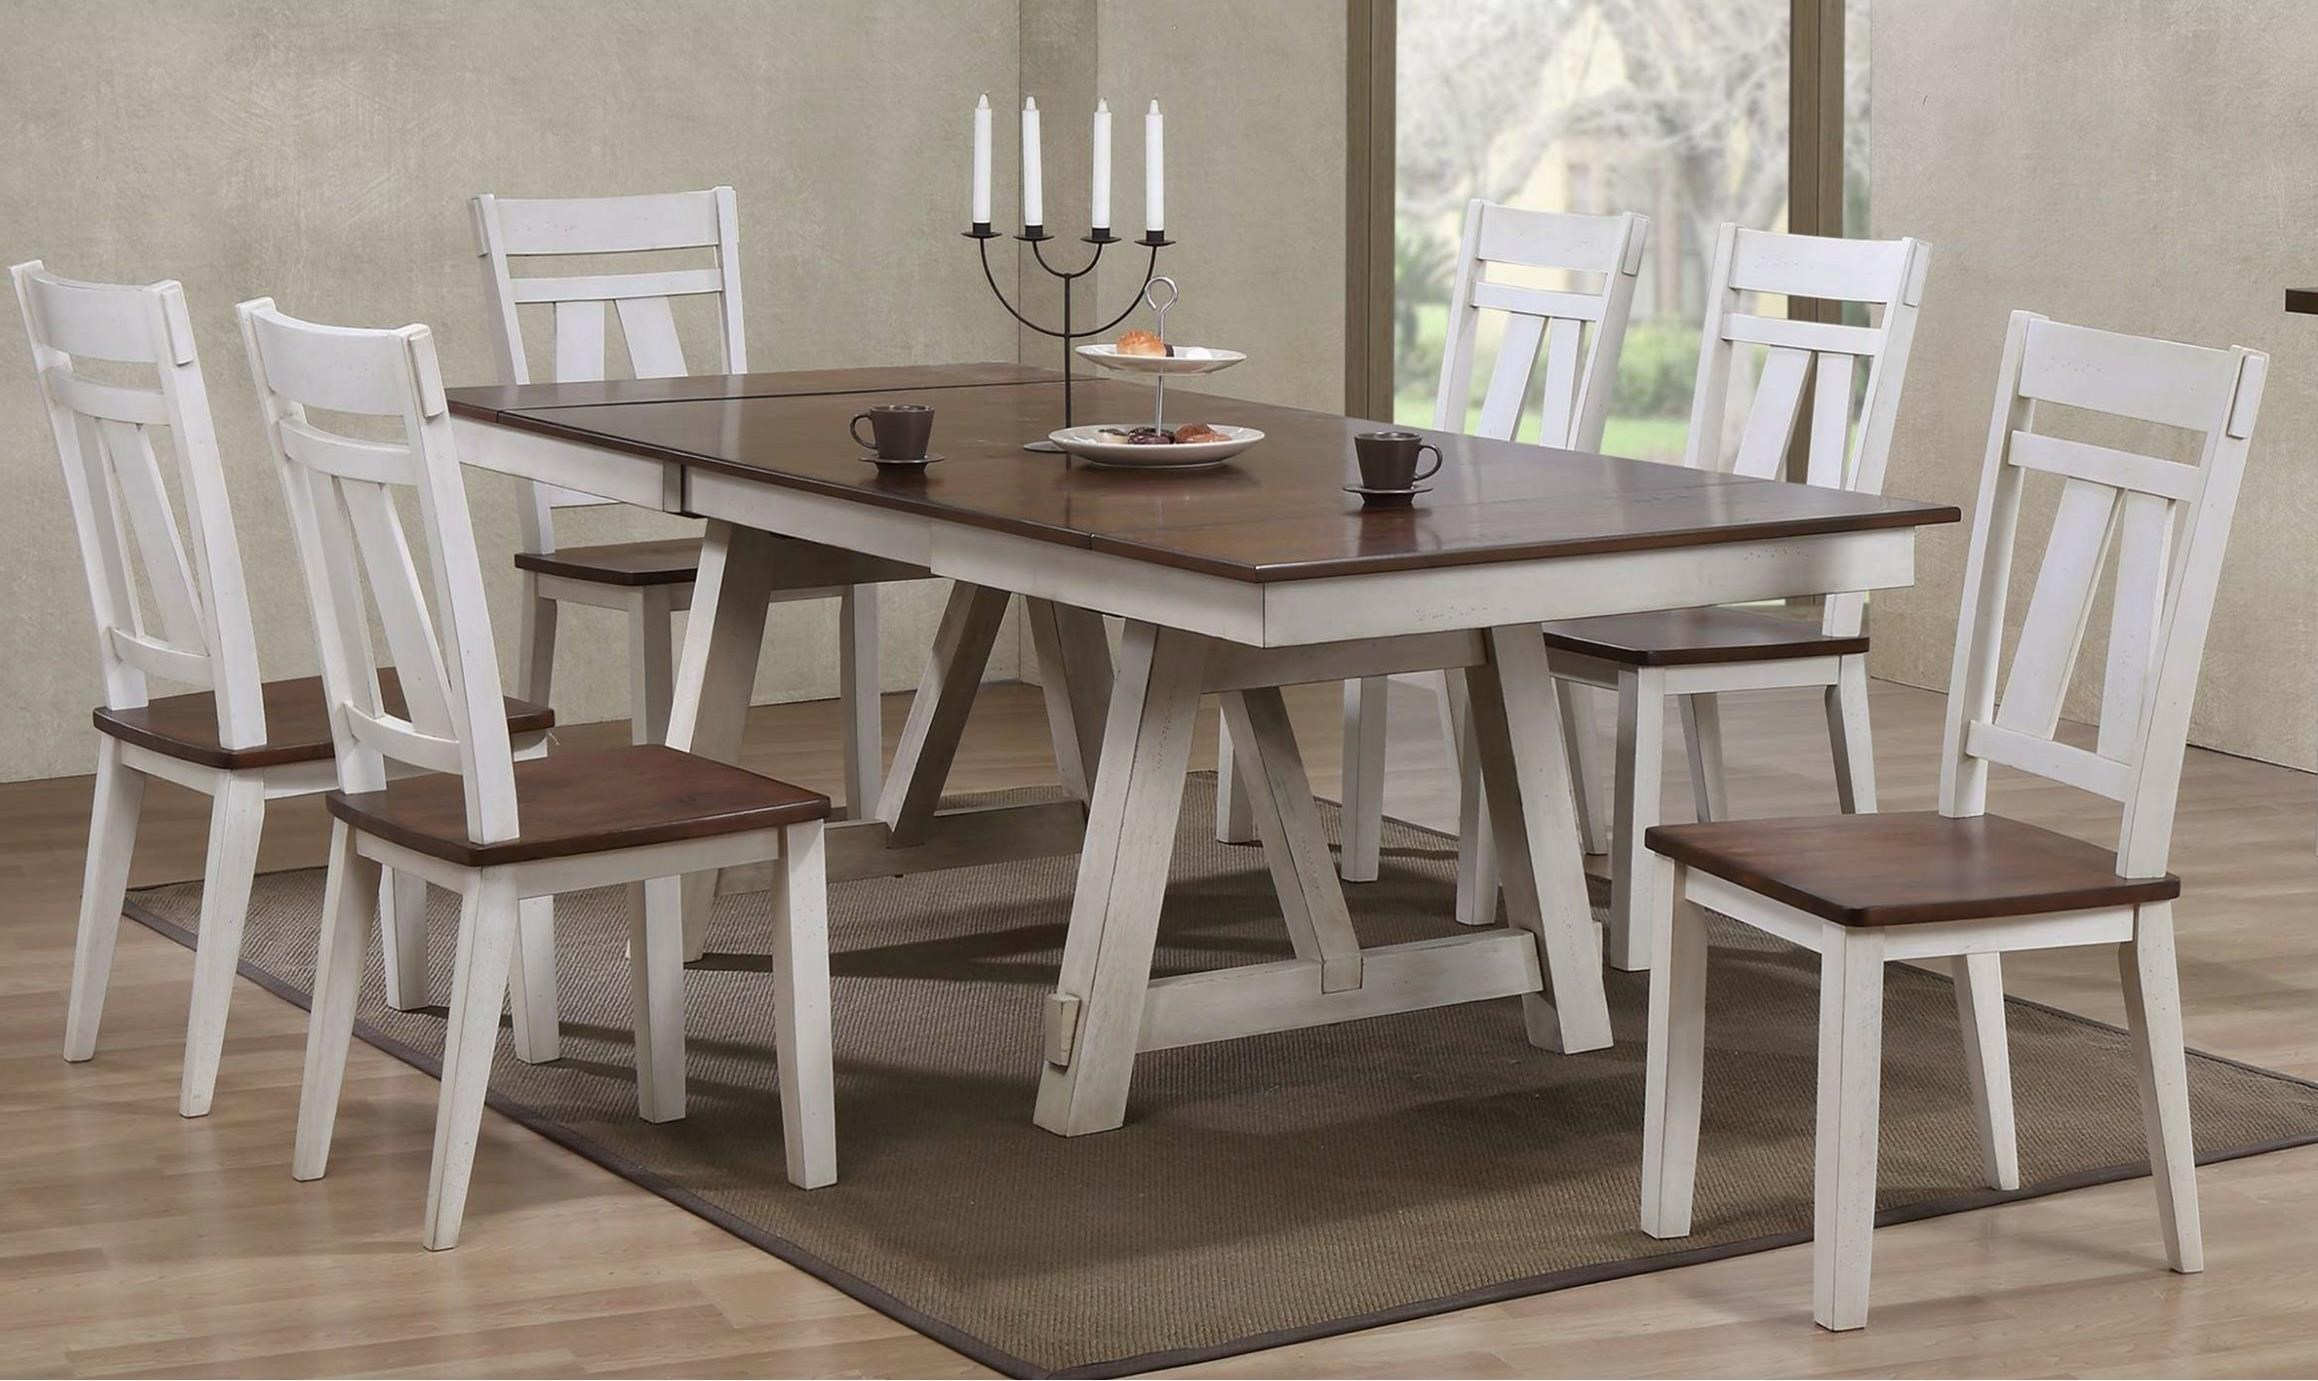 Picture of: Bernards Winslow 7 Piece Two Tone Refectory Table Set Royal Furniture Dining 7 Or More Piece Sets